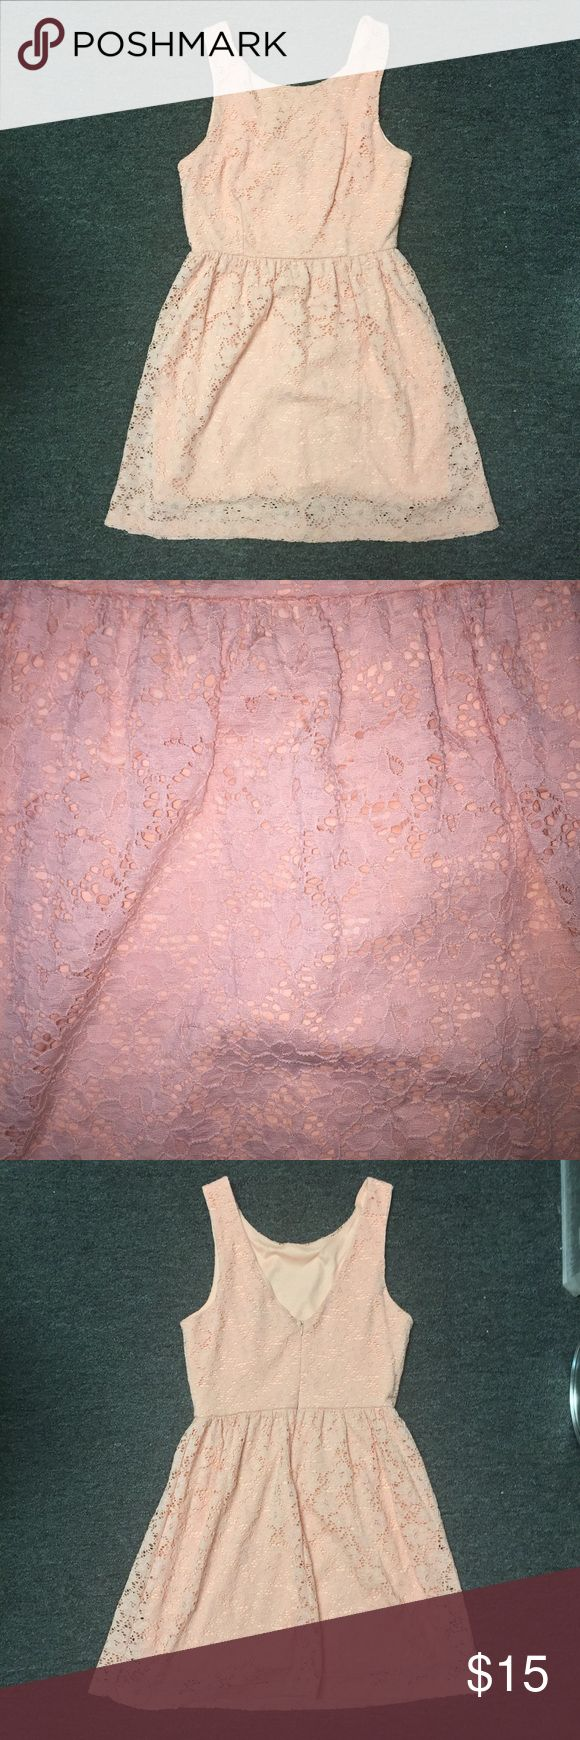 Blue Rain Peach Lace Dress with Open Back Blue Rain. Size Large. Zipper down the back. Peach colored Lace dress. Fully lined. Another piece that can easily be transitioned from summer to fall by throwing on a cute oversized Cardigan or jean jacket and some riding boots or even booties. Bust: 18 inches. Length: 35.5 inches. Waist: 14 inches. ALL MEASUREMENTS ARE TAKEN WITH ITEM LAYING FLAT. 95% nylon, 5% spandex. Blue Rain Dresses